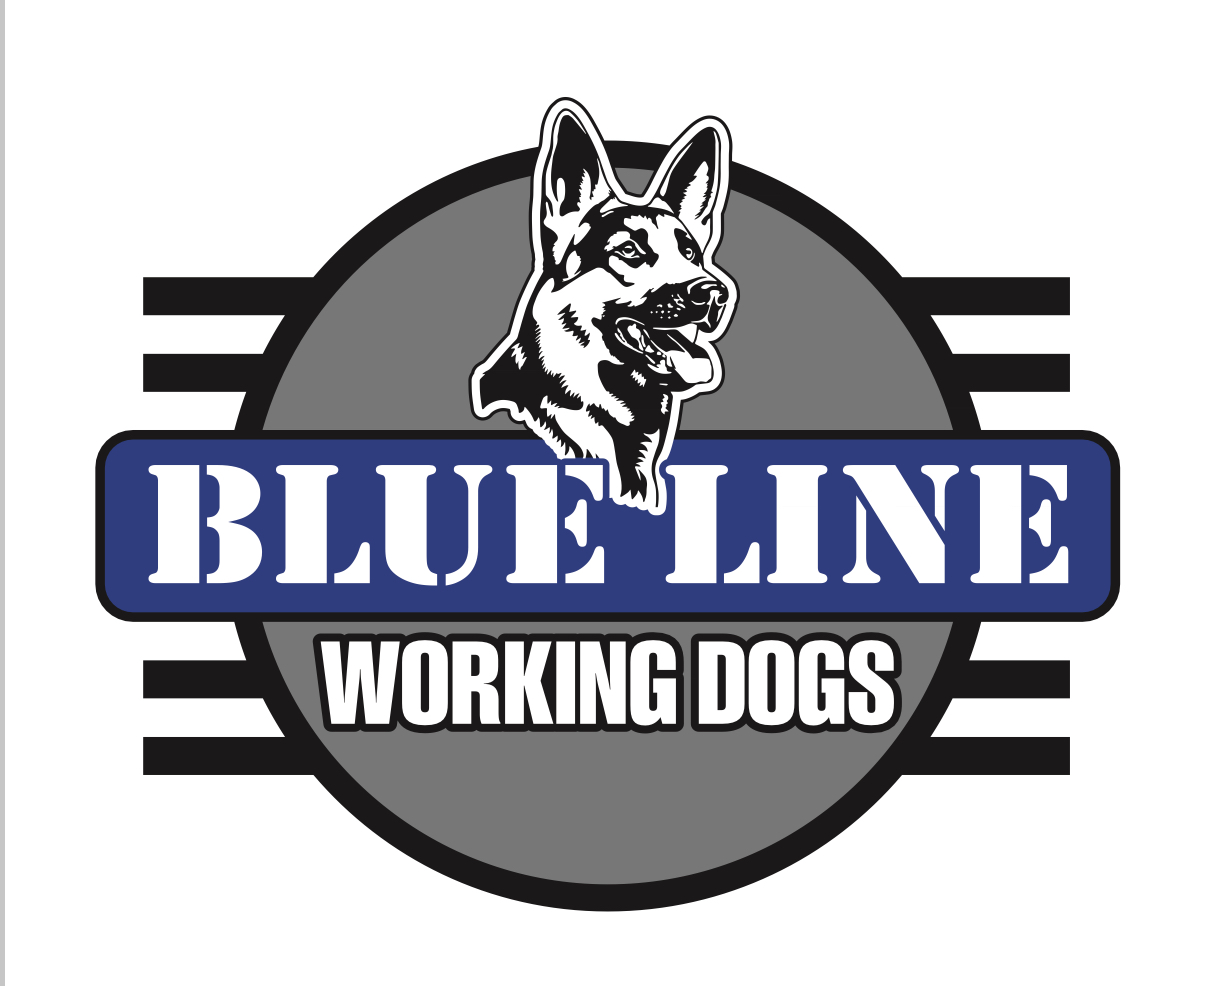 Blue Line Working Dogs